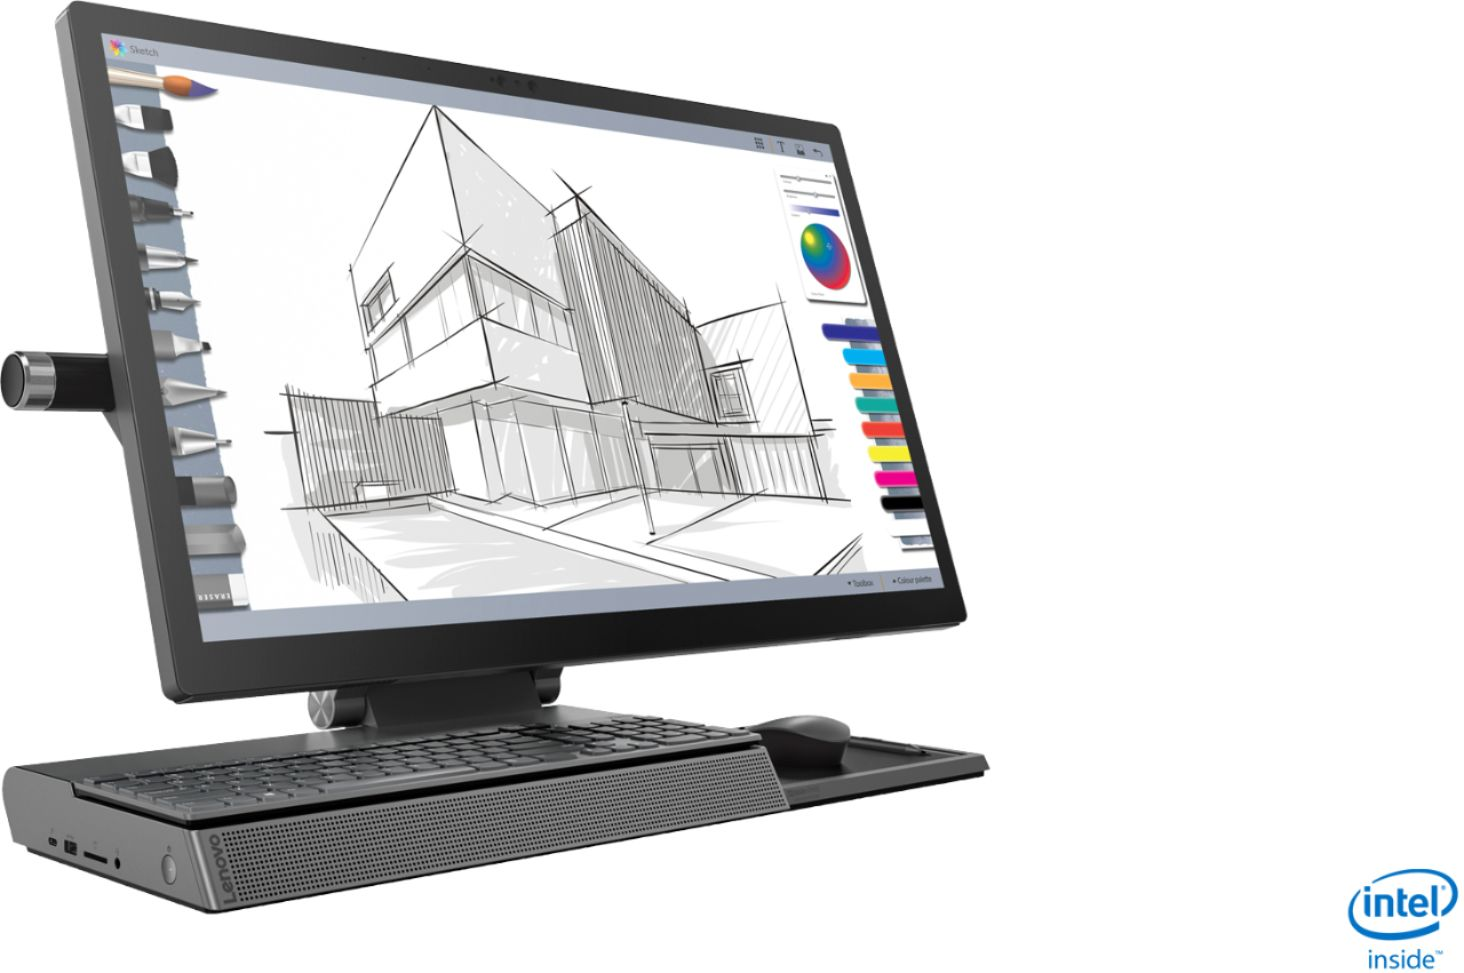 """Angle Zoom. Lenovo - Yoga A940 27"""" Touch-Screen All-In-One - Intel Core i7 - 16GB Memory - 1TB Hard Drive + 256GB Solid State Drive - Grey."""